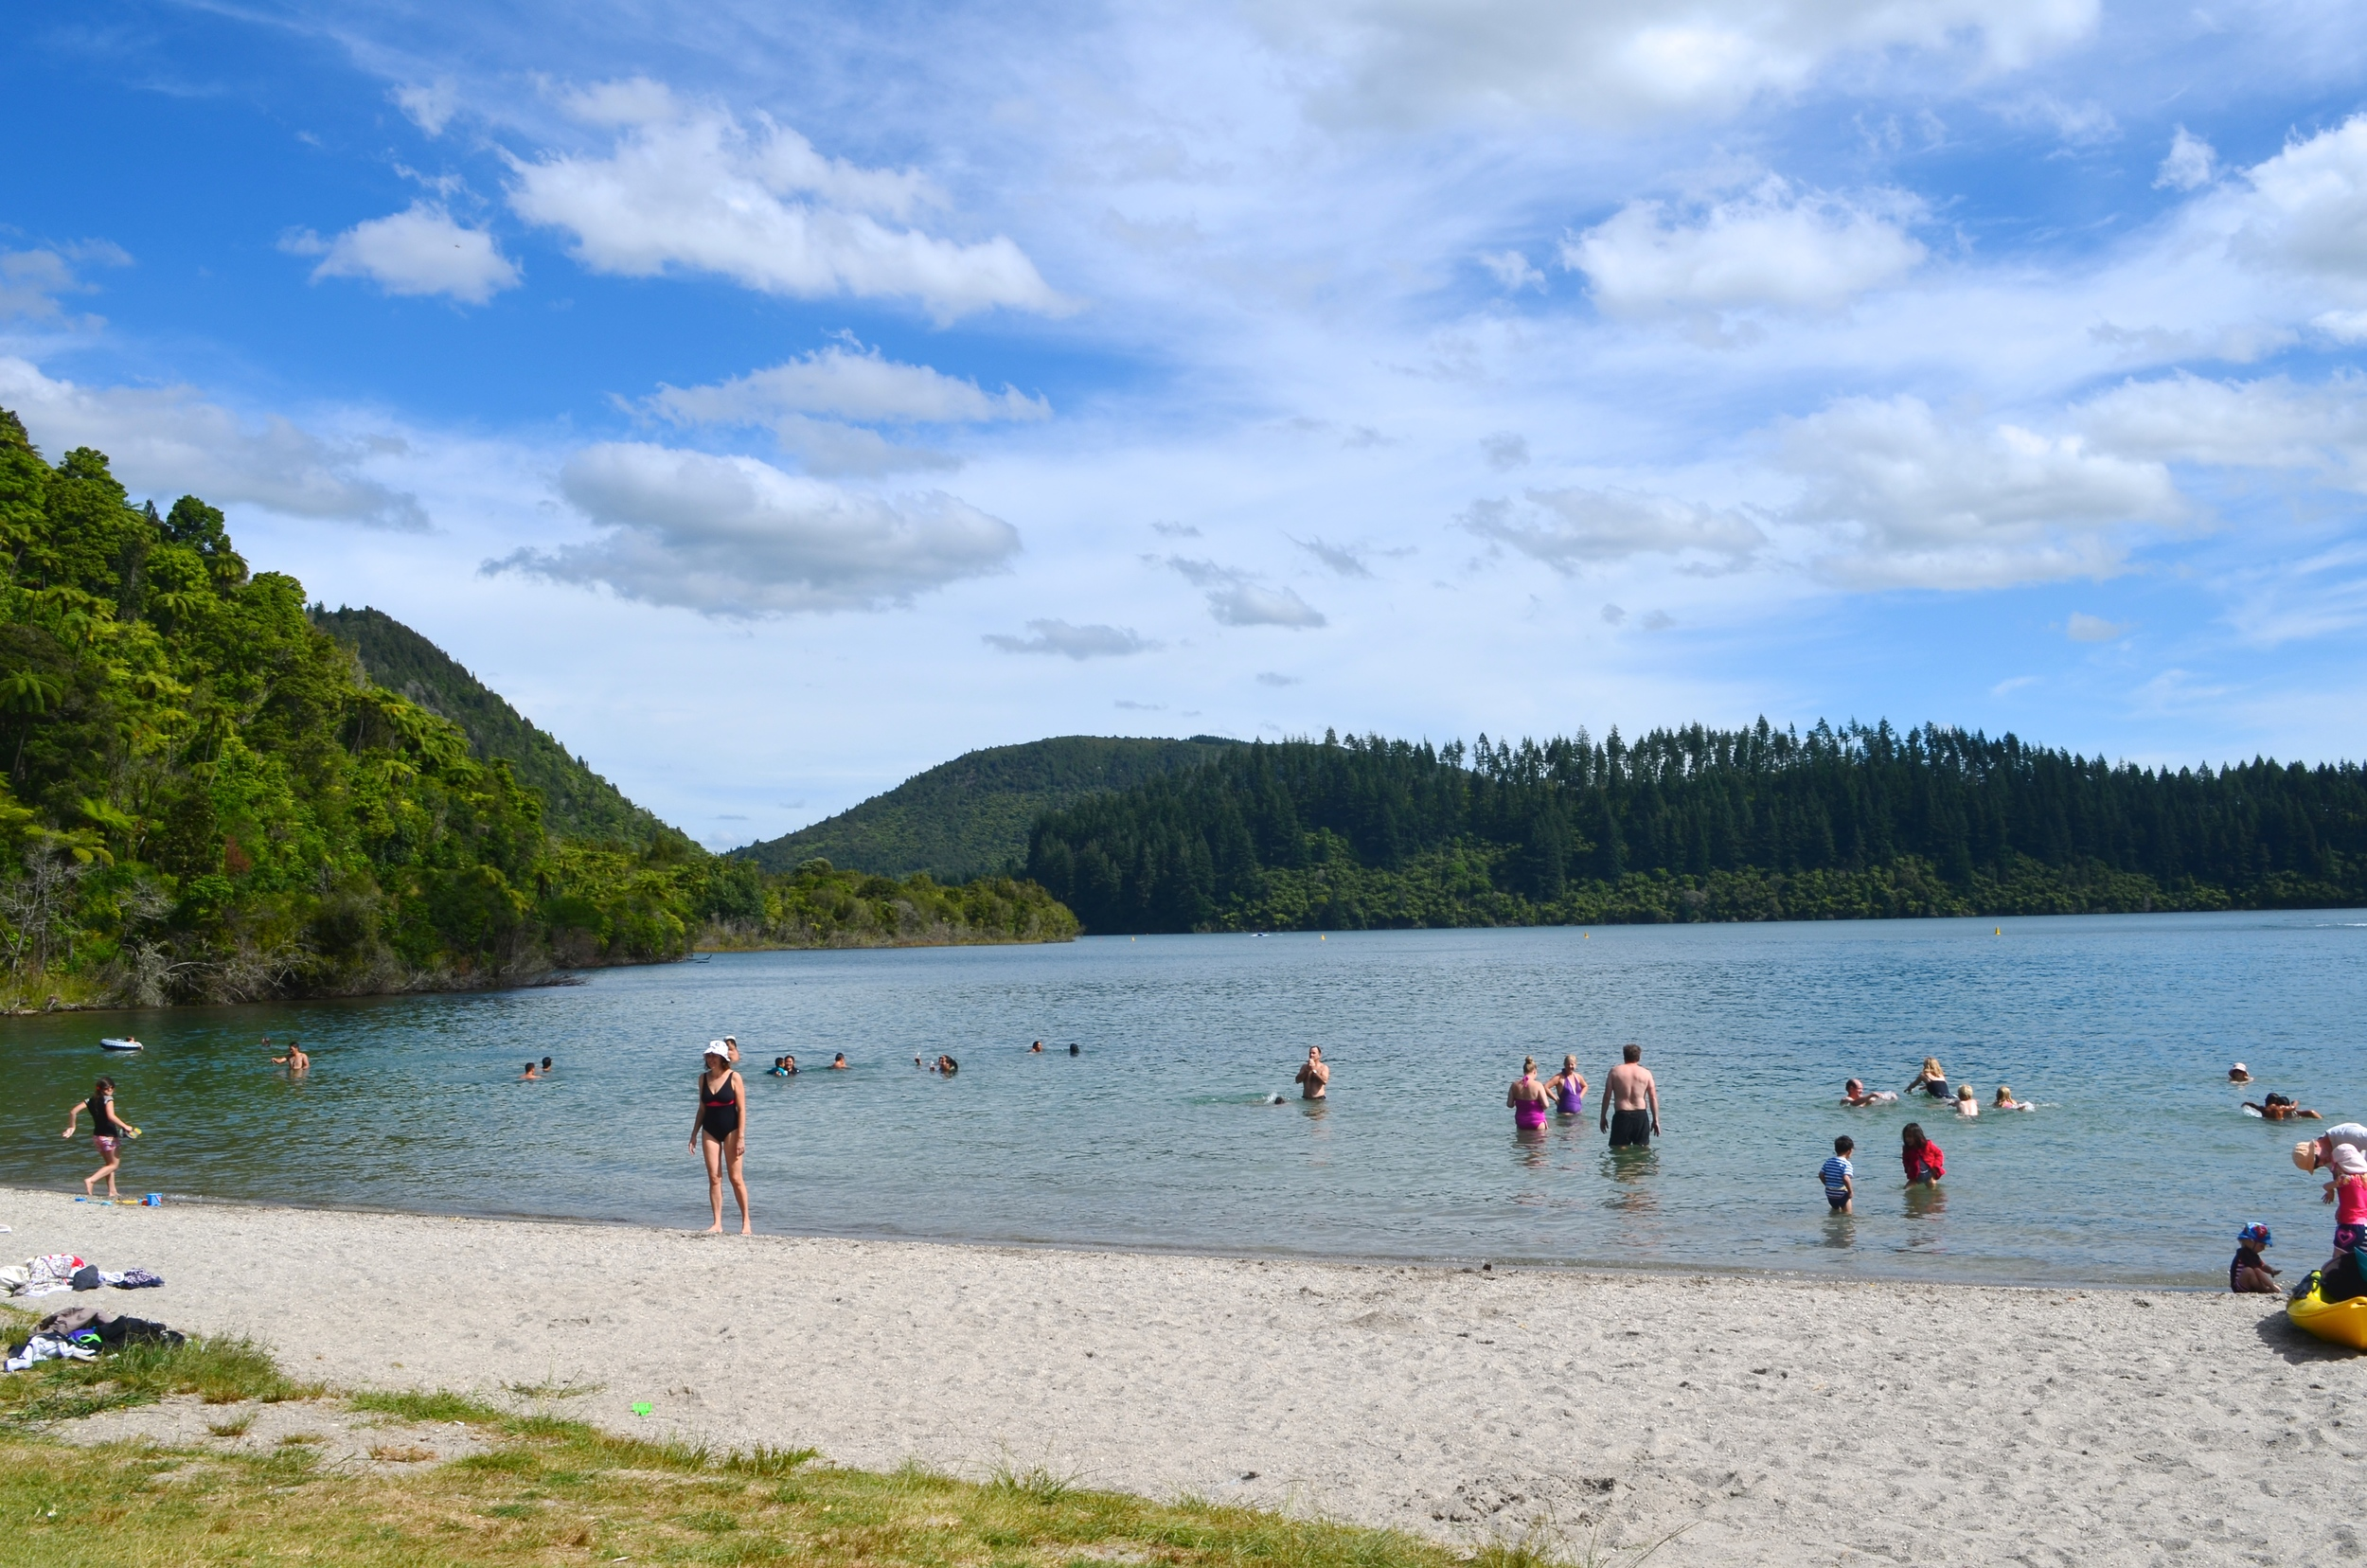 One of the most beautiful days on Blue Lake in Roturua.